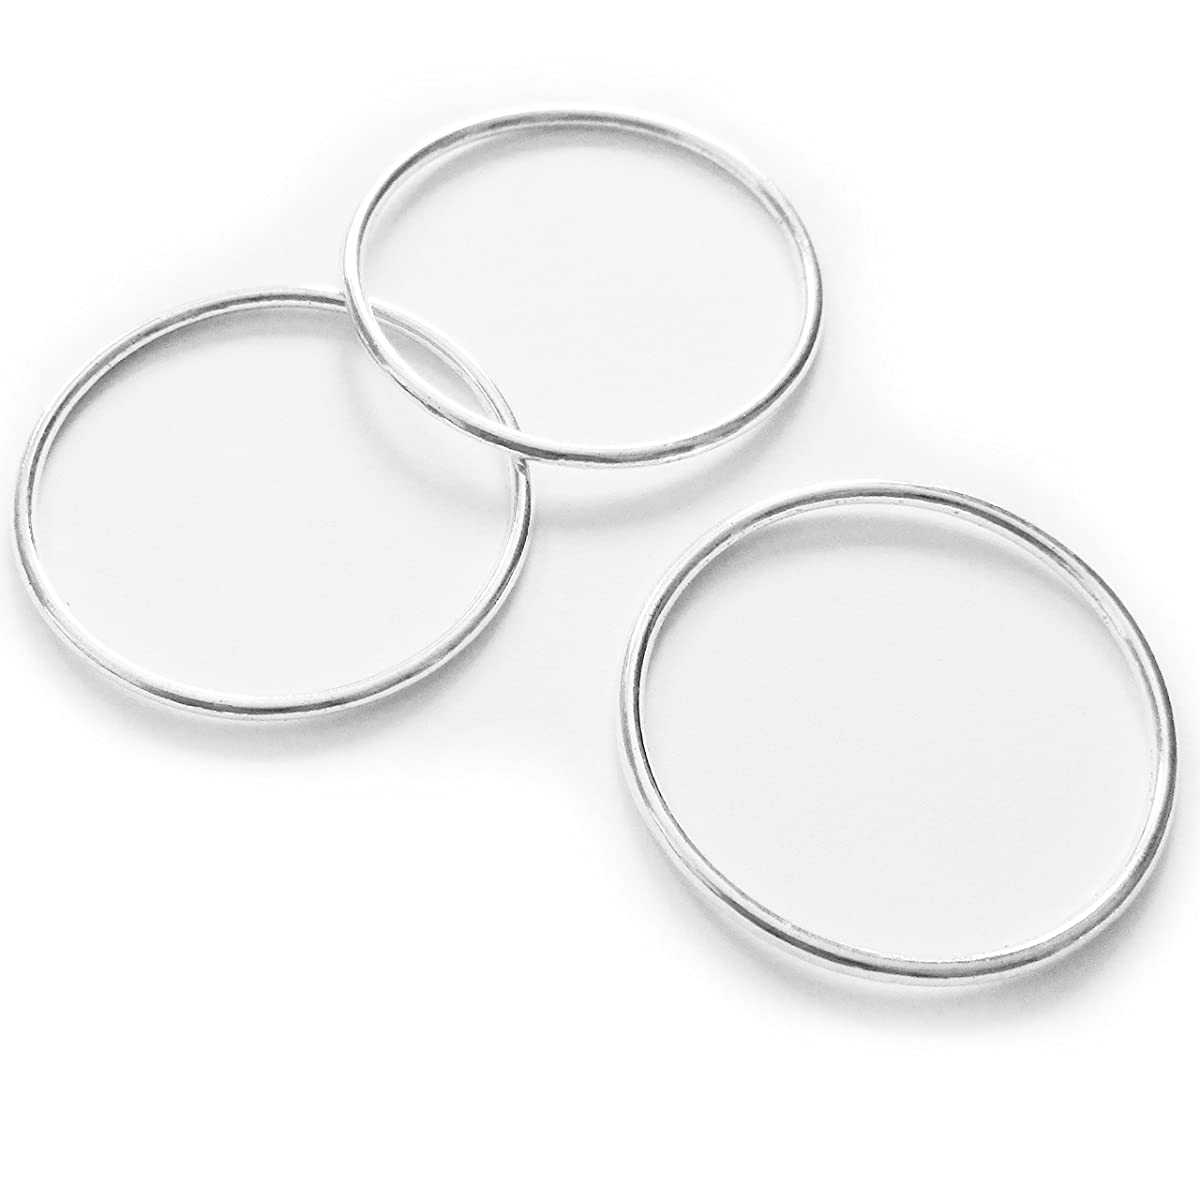 Heather's cf 35 Pieces Silver Tone-Smooth Circle-Close Circle Findings Jewelry Making-35mm)